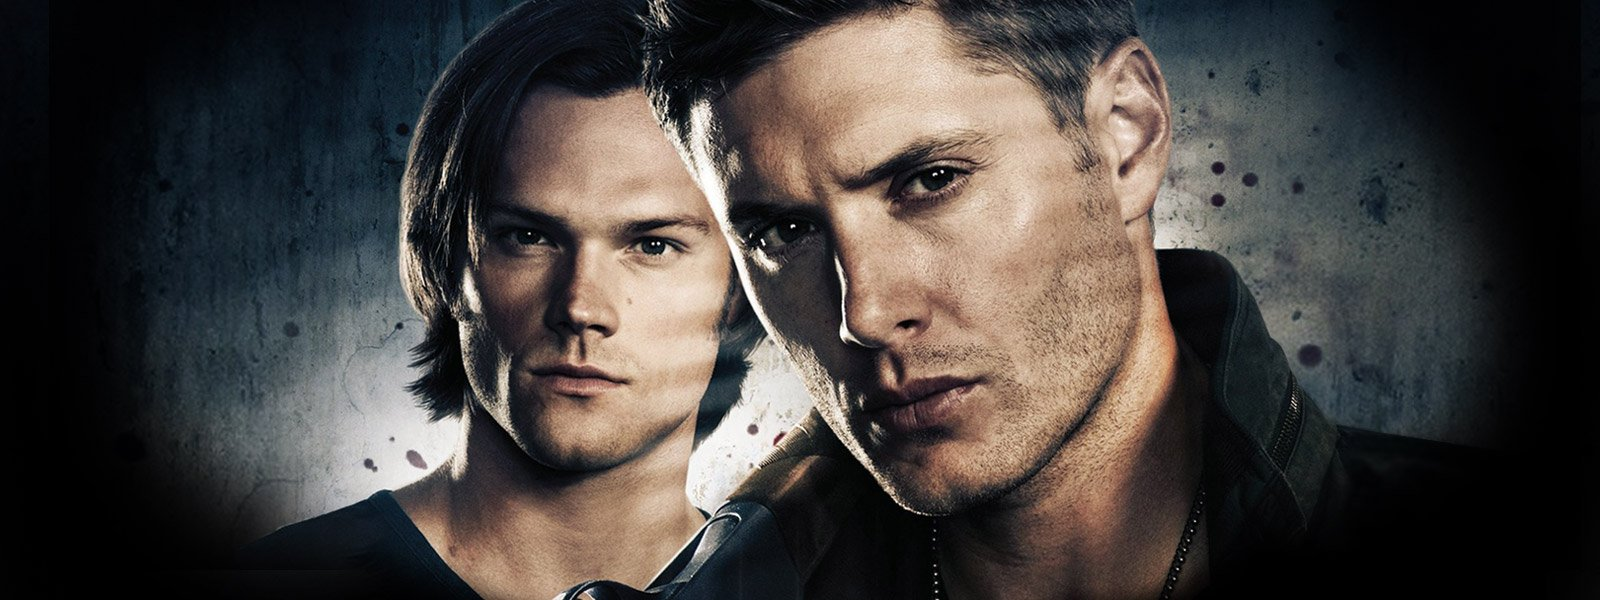 11 Reasons Why Renewing Supernatural For Season 11 Was A Bad Idea! - Hit The Floor